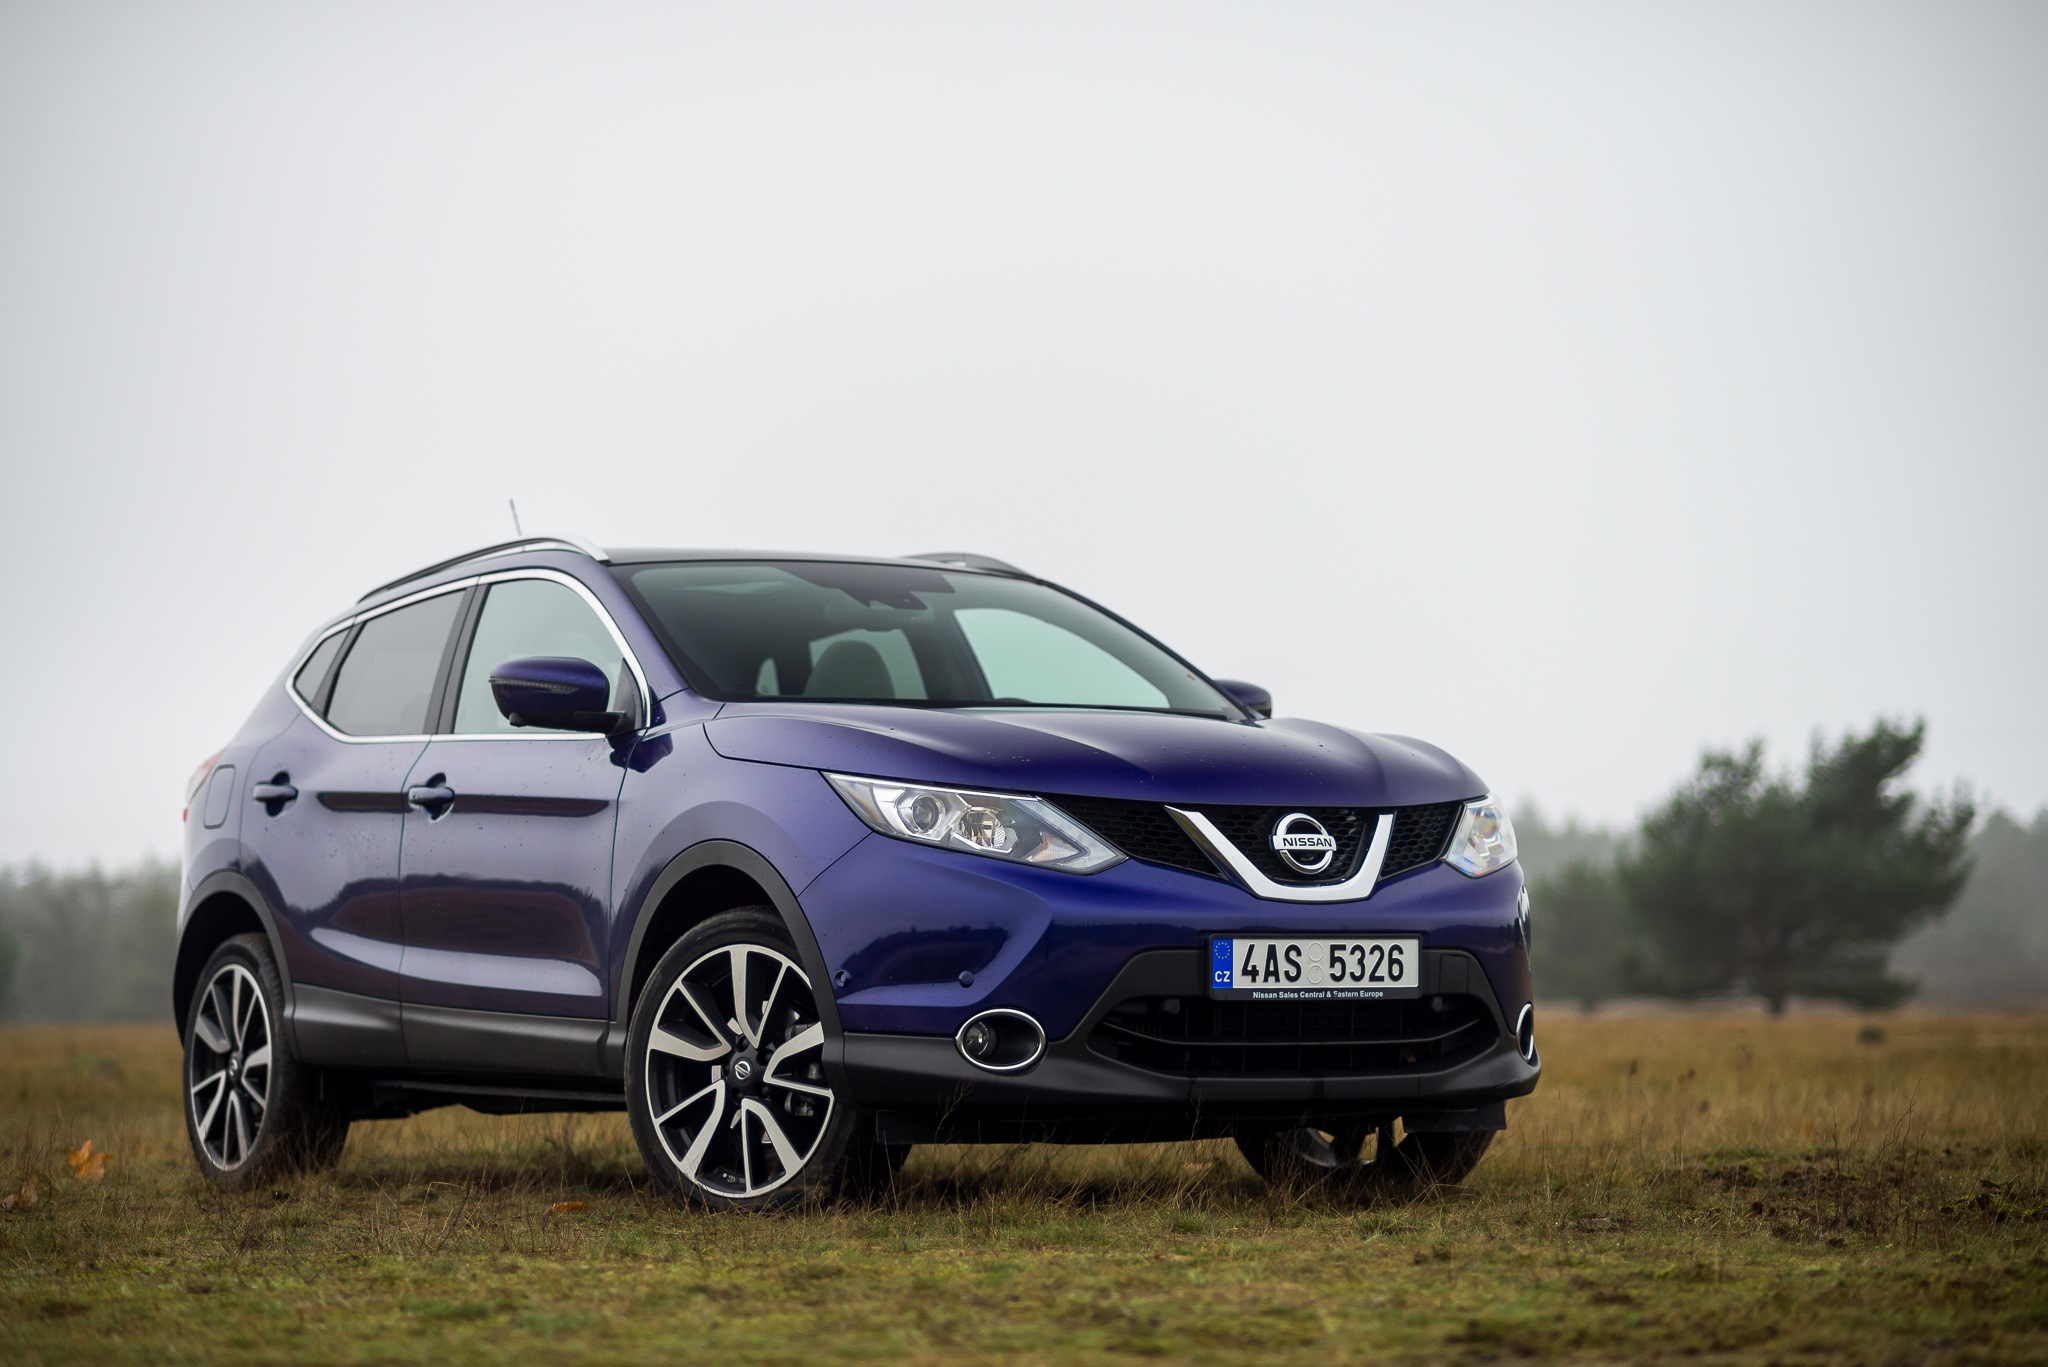 nissan qashqai 1 6 dci 4x4 tekna test project automotive